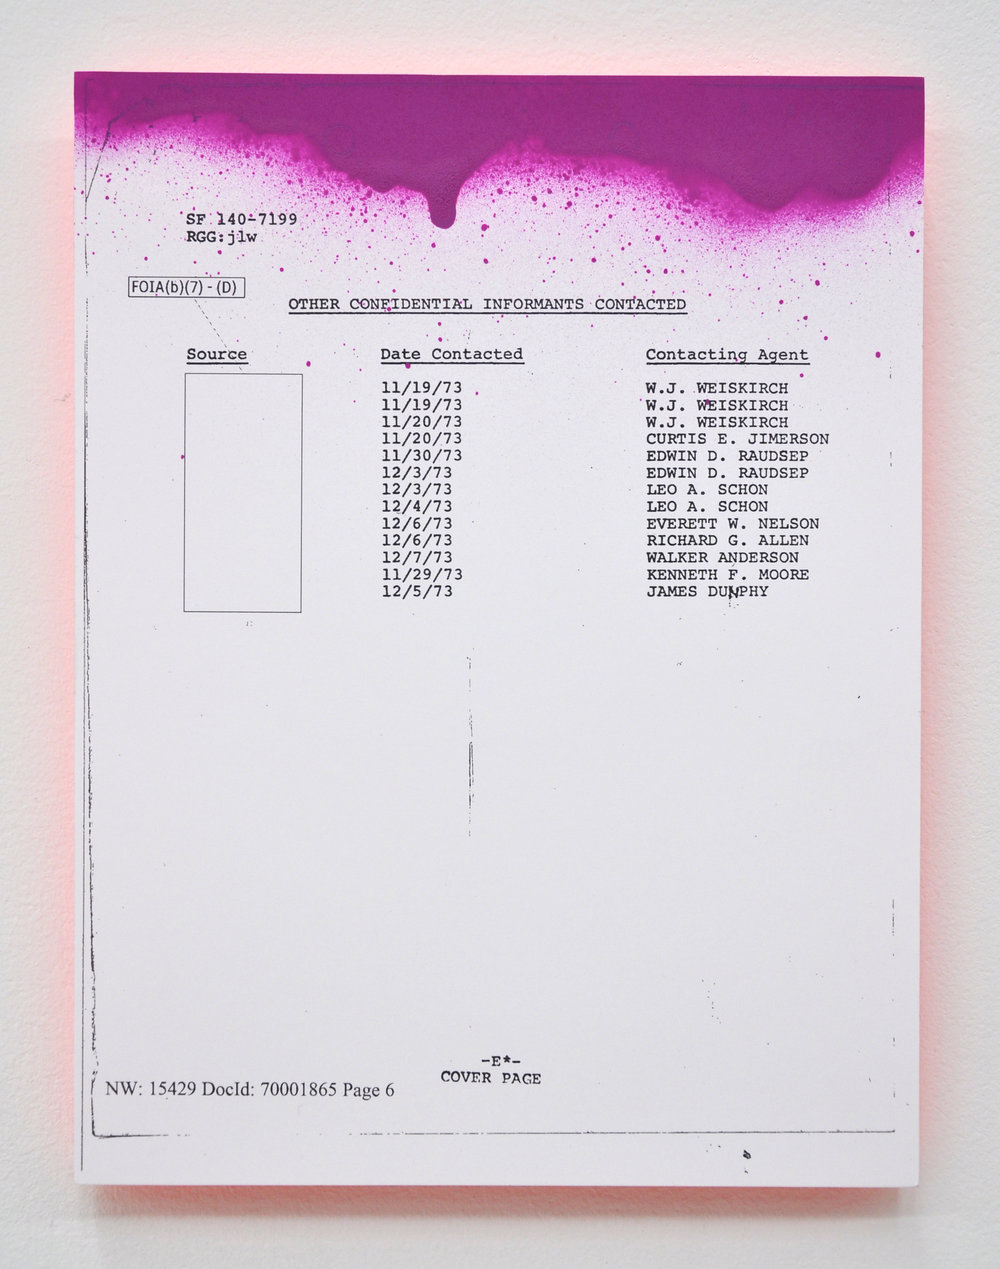 Sadie Barnette, Excerpt: My Father's FBI File, Project III, Laser print with aerosol paint and rhinestones mounted to plexiglass, 10.5 x 8.75in, 2017, NFS